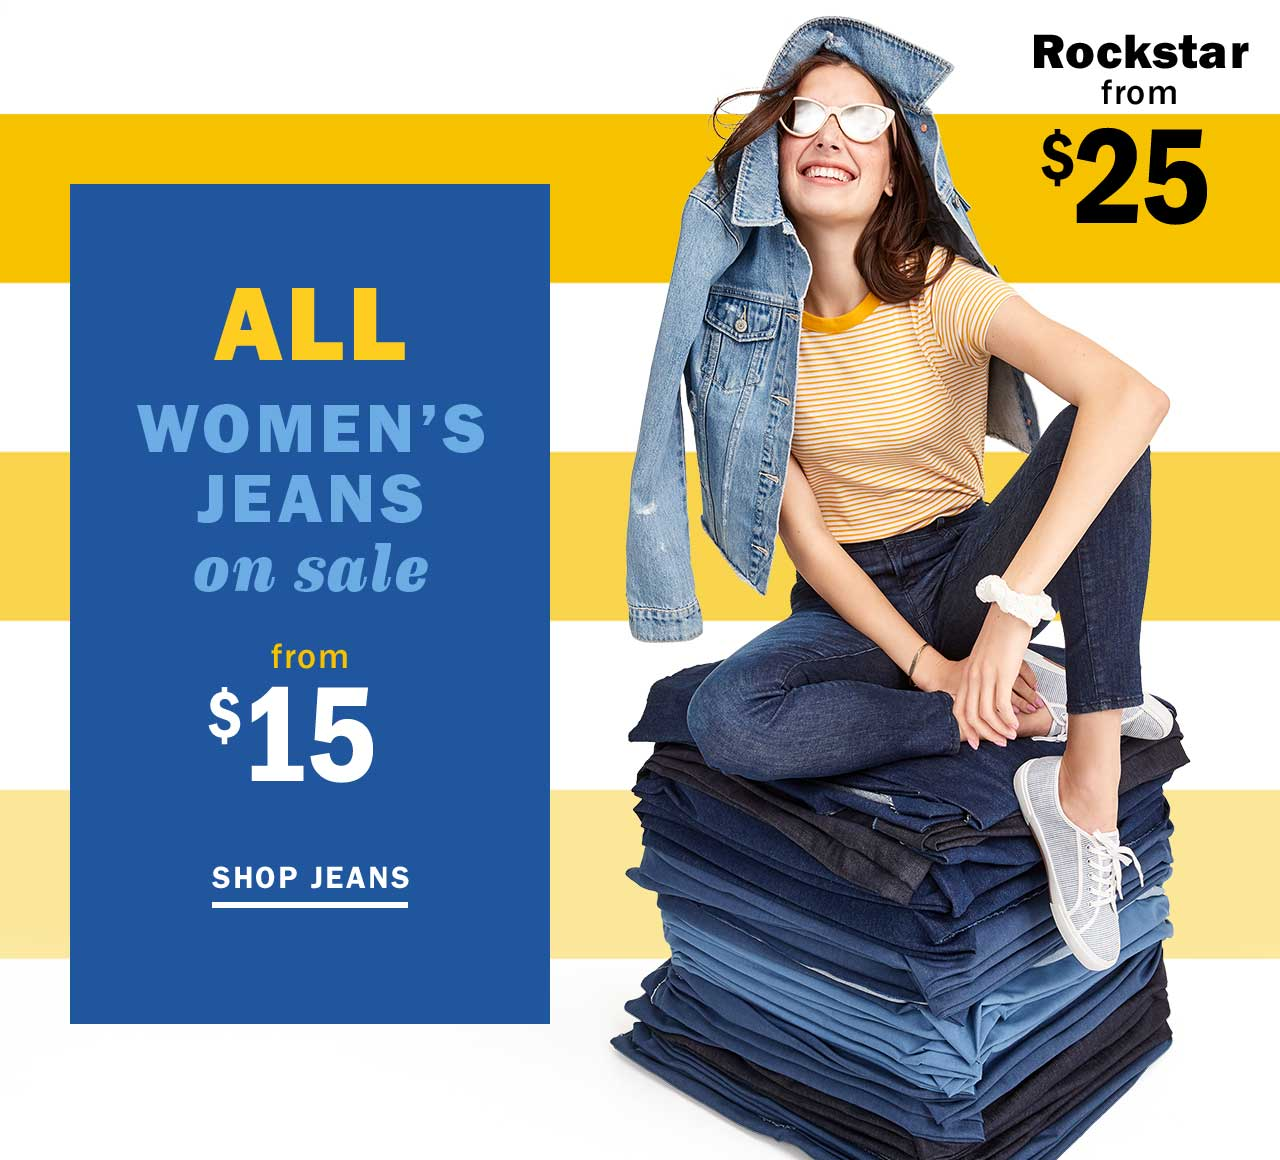 ALL WOMENS JEANS on sale from $15 | SHOP JEANS